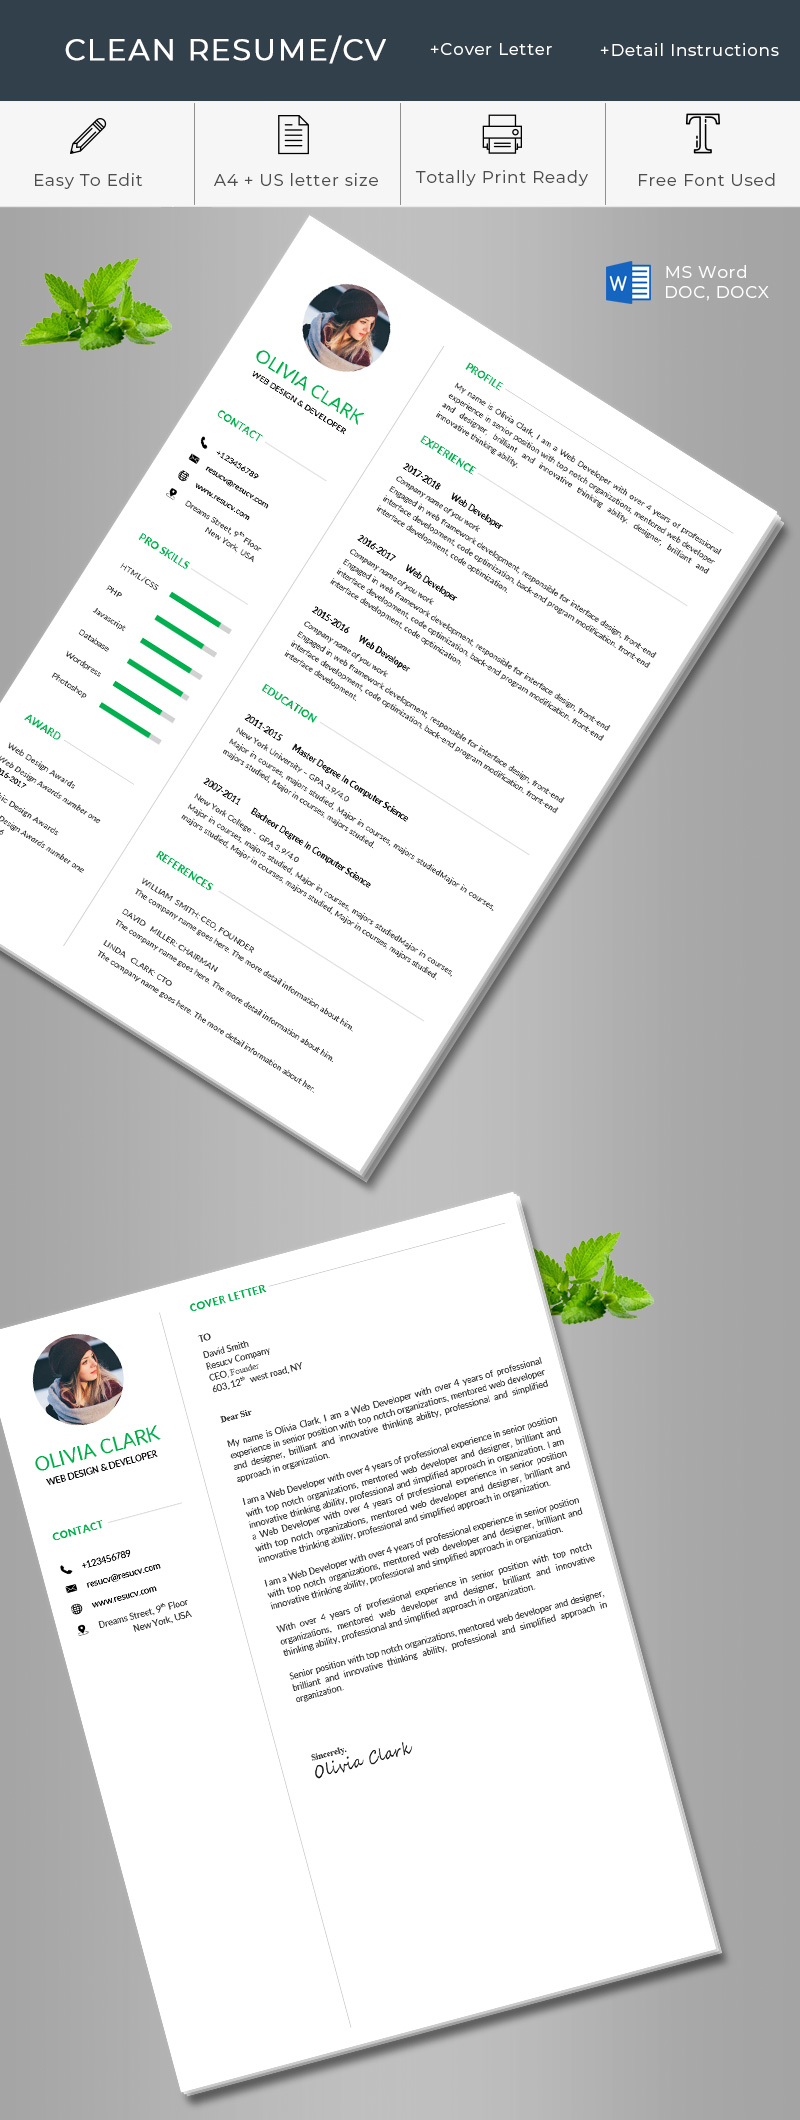 Green clean resume/cv template word format